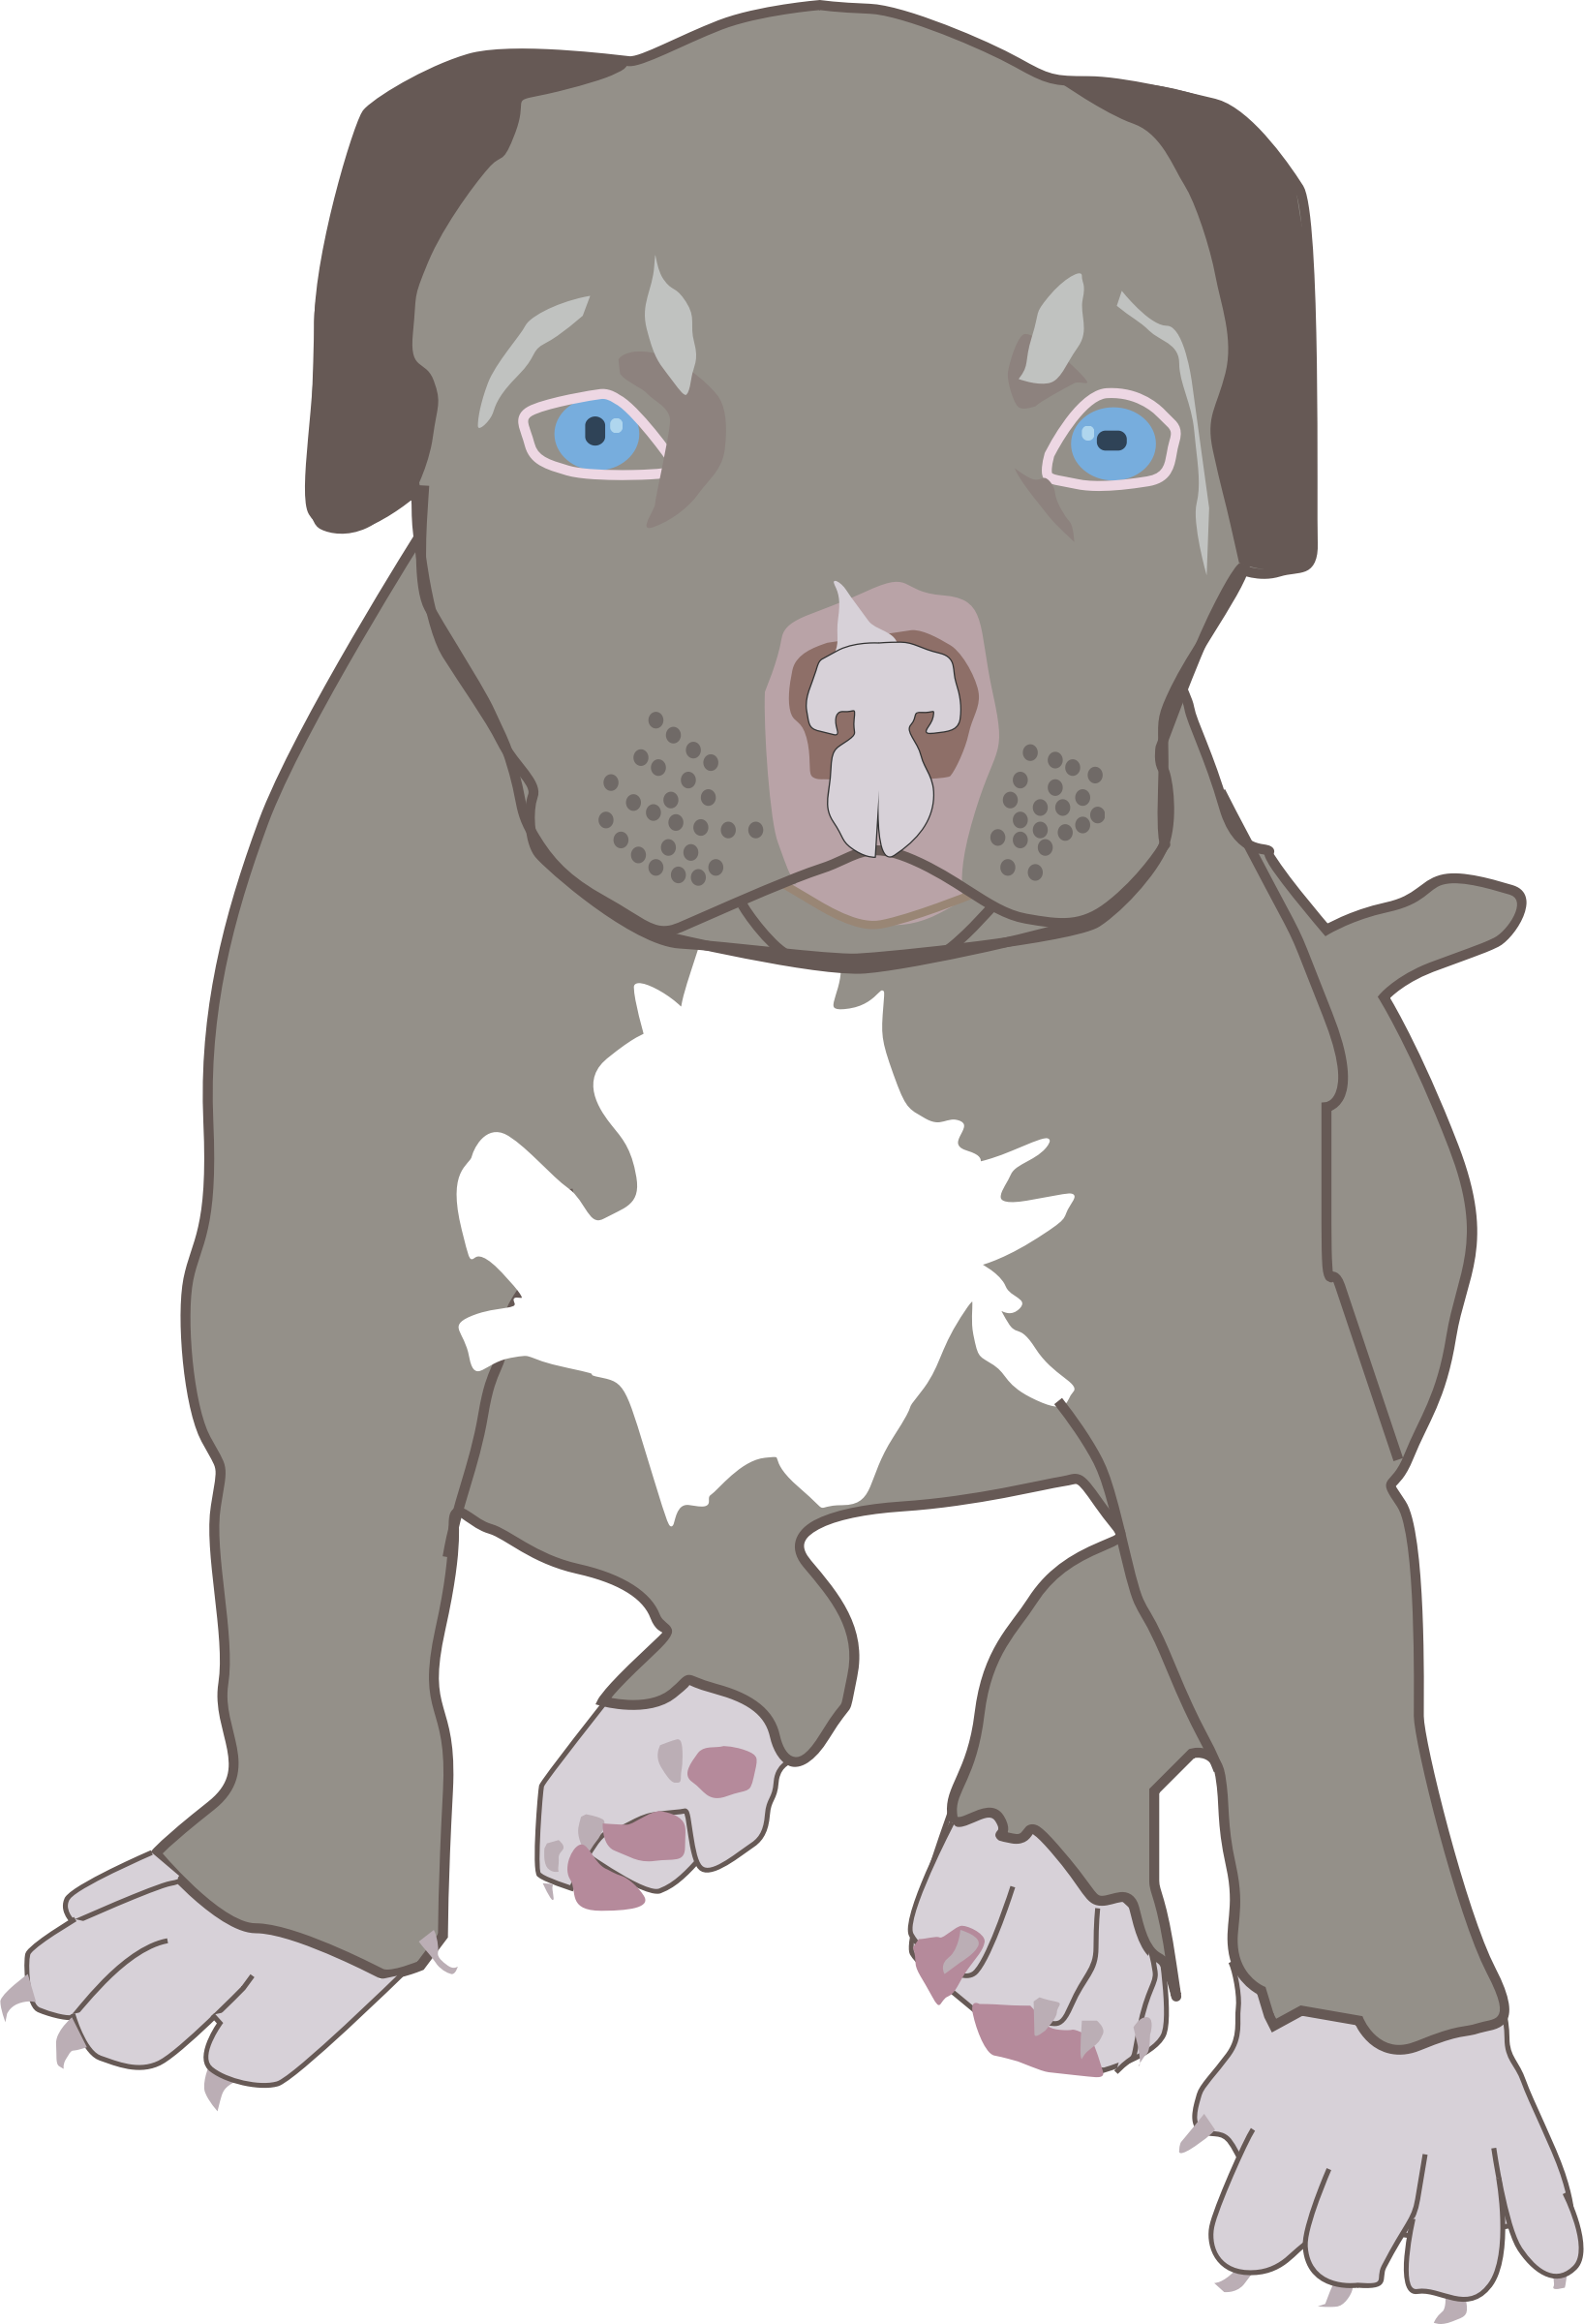 Pitbull Puppy clipart #13, Download drawings